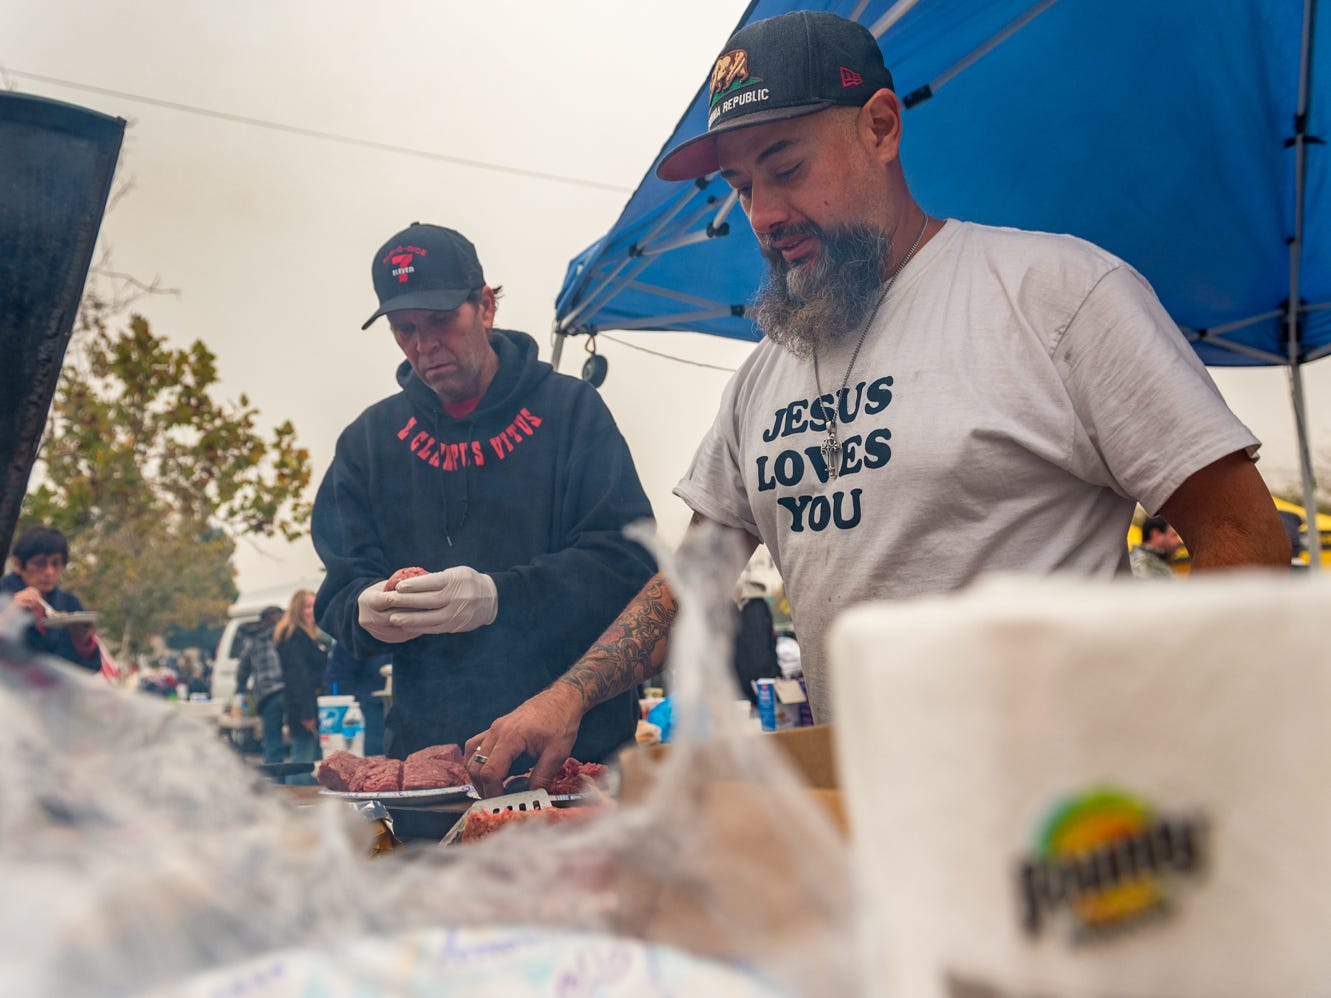 Volunteers Paul Aggers and Izzy Taylor distribute free food to neighbors in need in Chico, Calif. on Nov. 13, 2018.